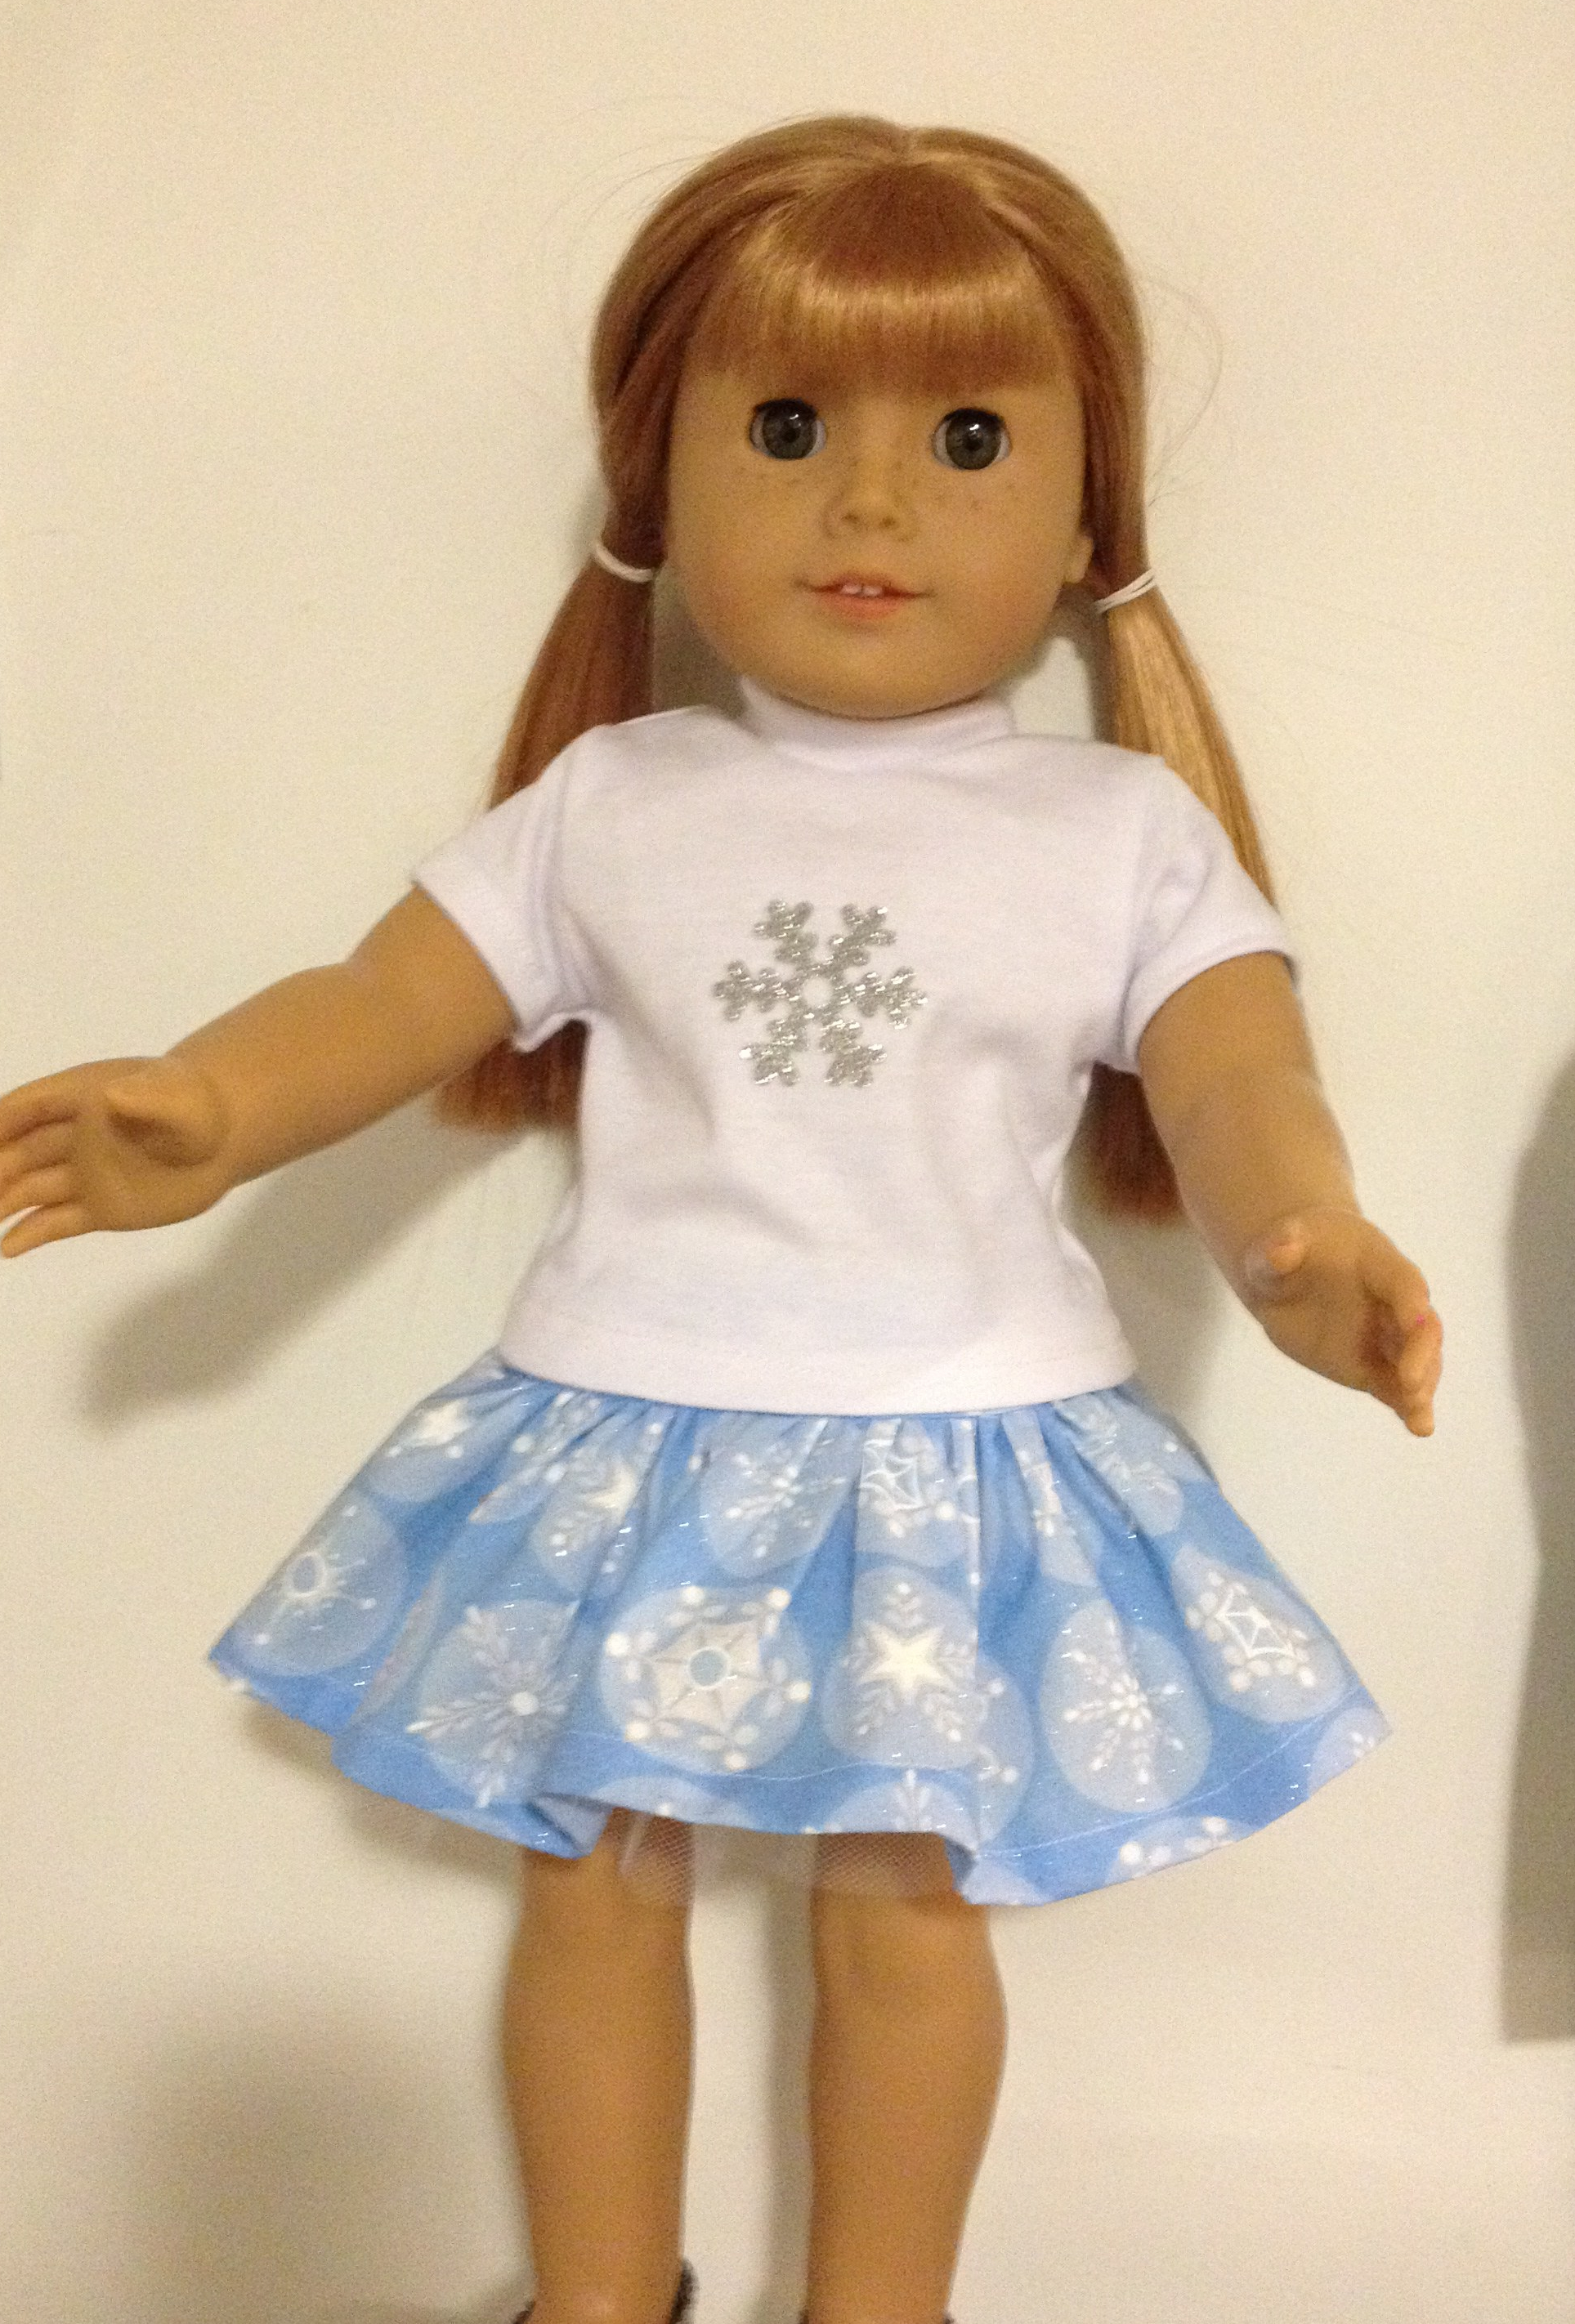 Make a sparkly snowflake tee shirt for your 18 inch doll with this quick and easy HTV tutorial by Oh Sew Kat! Find more sewing patterns for American Girl dolls (free skirt pattern) at www.ohsewkat.com. #ohsewkat #cricuttutorial #dollteeshirt #htvtutorial #dollcraft